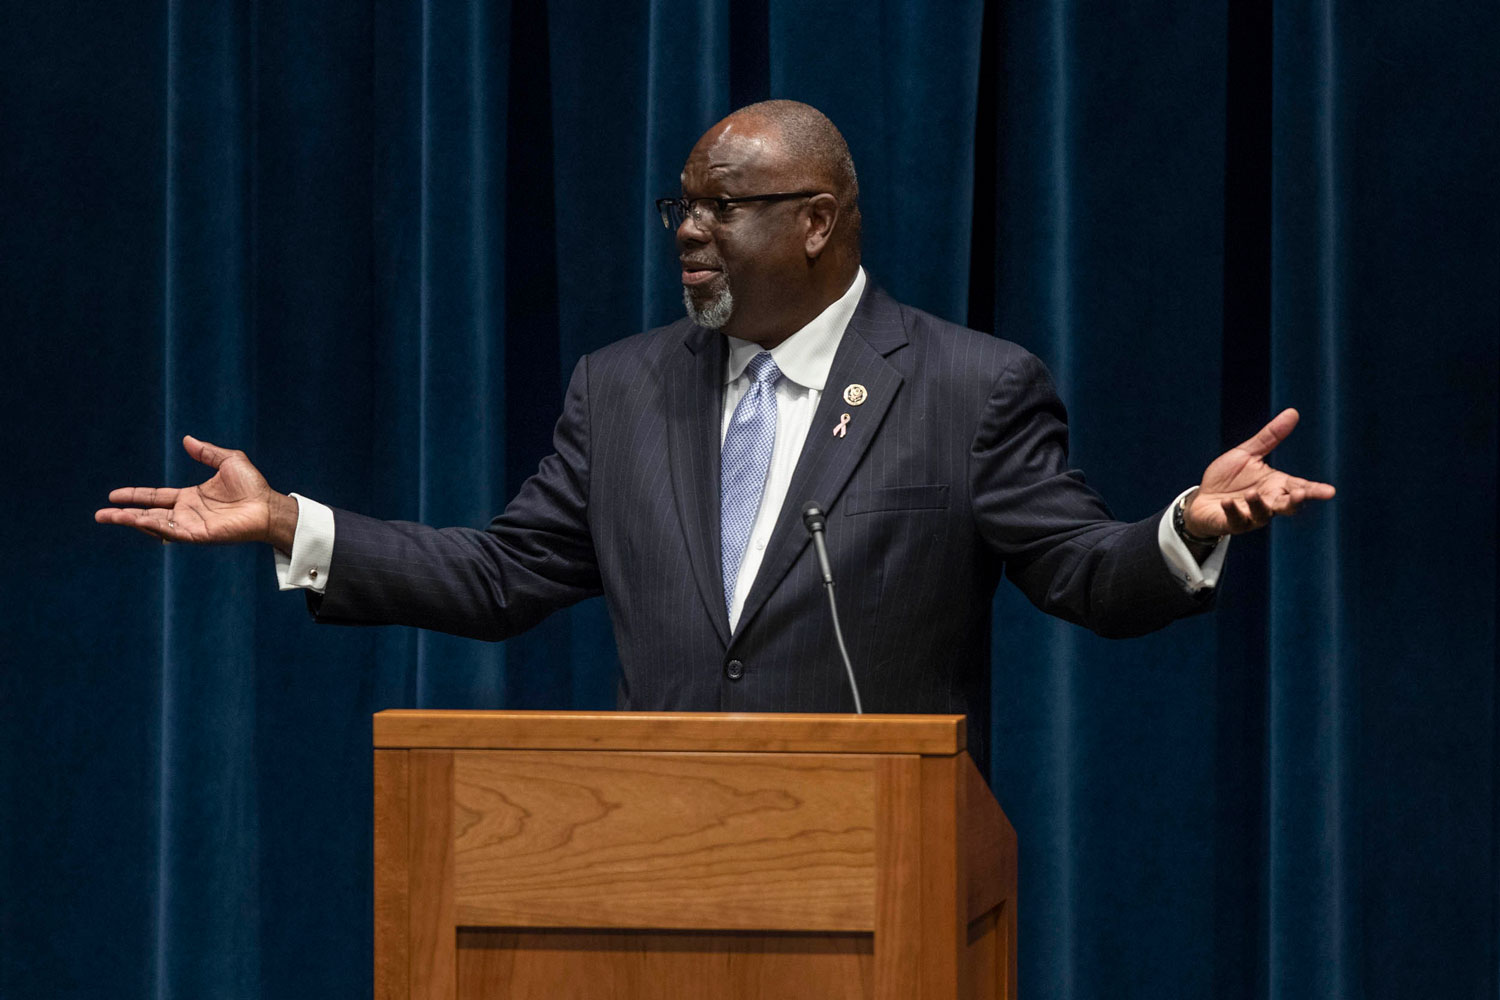 U.S. Judge Carlton Reeves spoke at UVA's School of Law on Thursday, before receiving the Thomas Jefferson Foundation Medal in Law on Friday.